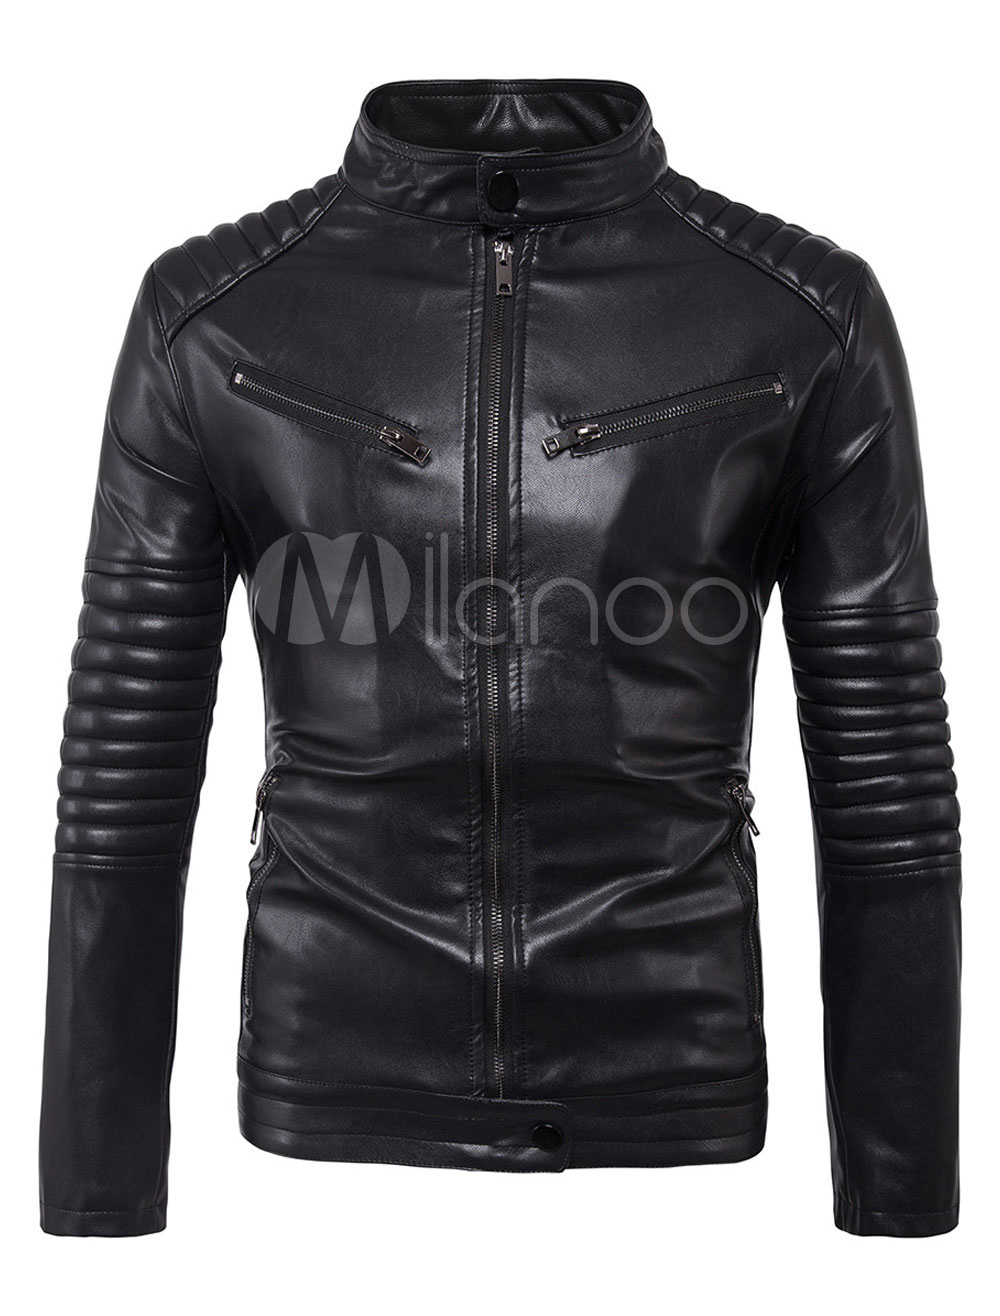 Buy Black Leather Jacket Men Motorcycle Jacket Stand Collar Long Sleeve Spring Jacket for $64.99 in Milanoo store